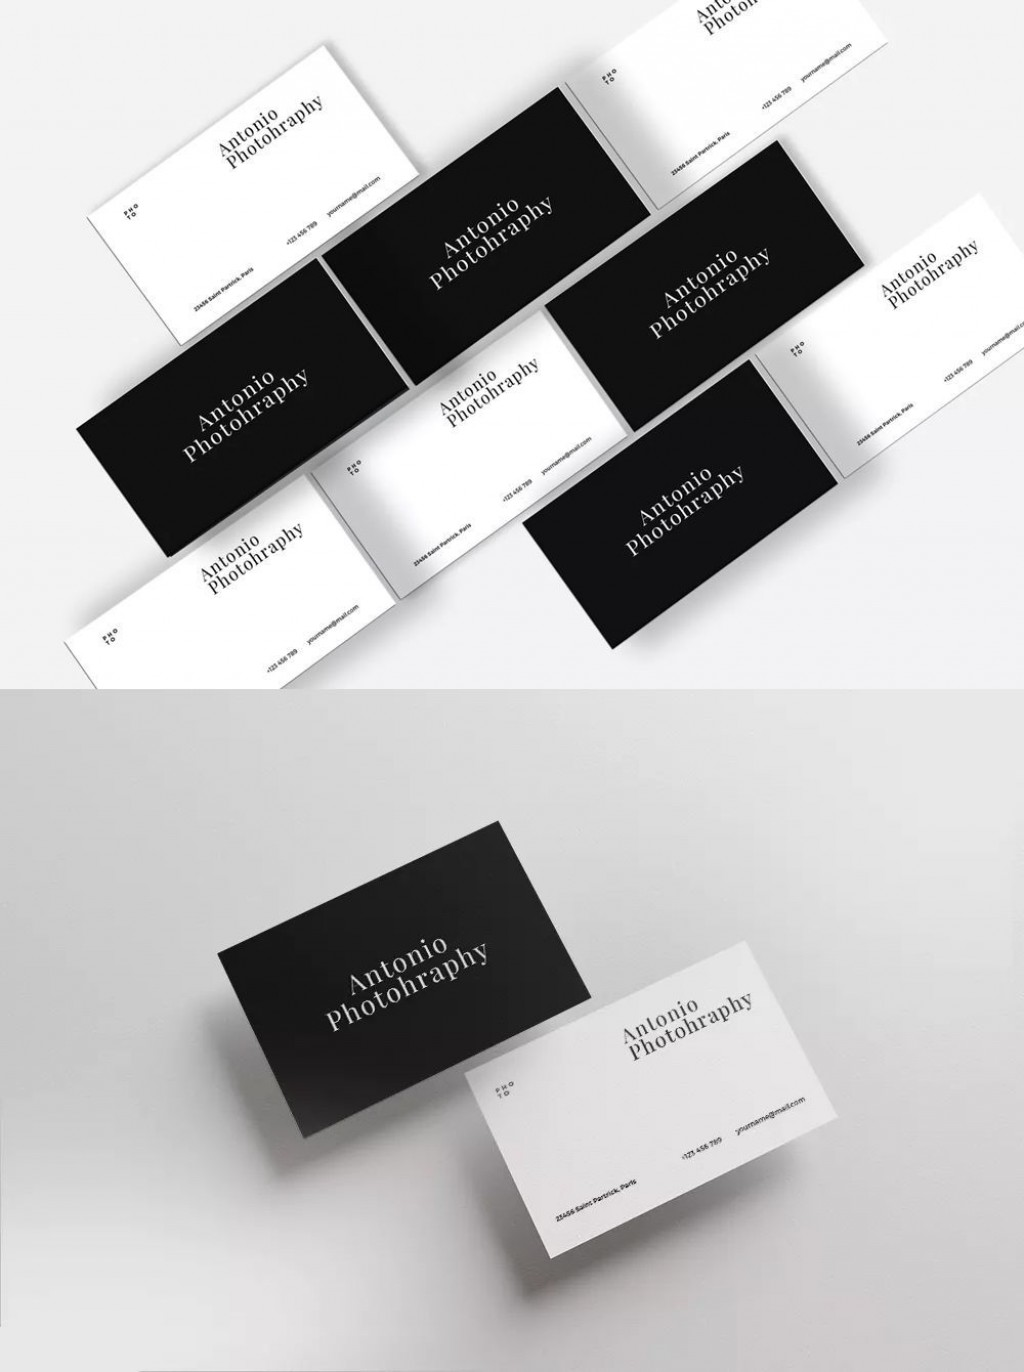 002 Exceptional Minimal Busines Card Template Psd Photo  Simple Visiting Design In Photoshop File Free DownloadLarge